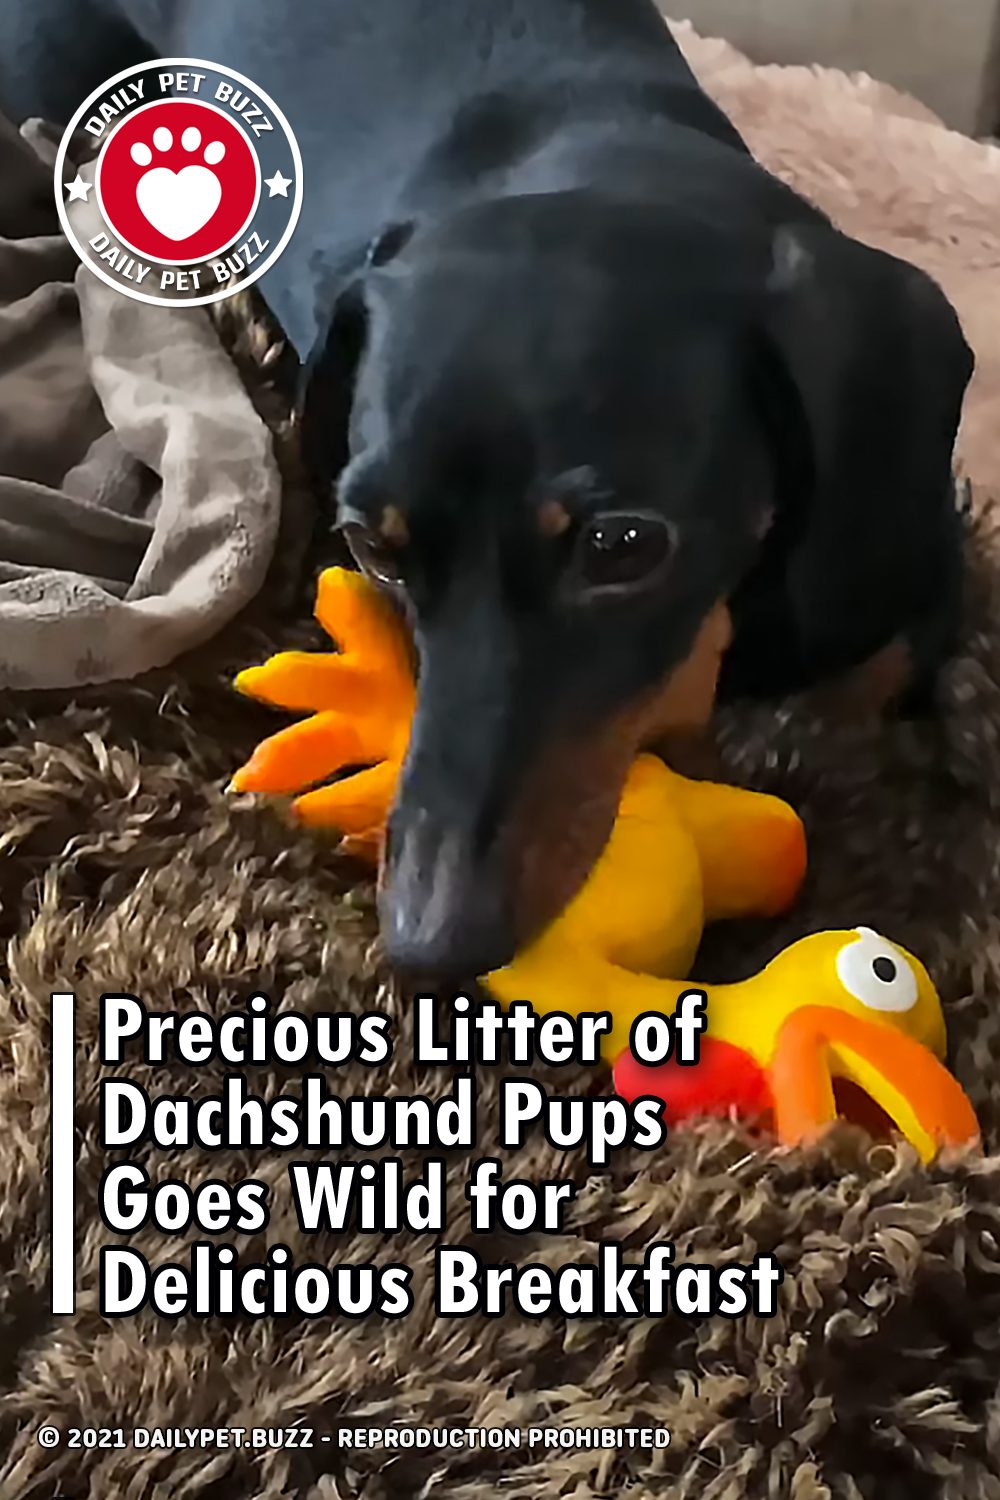 Precious Litter of Dachshund Pups Goes Wild for Delicious Breakfast